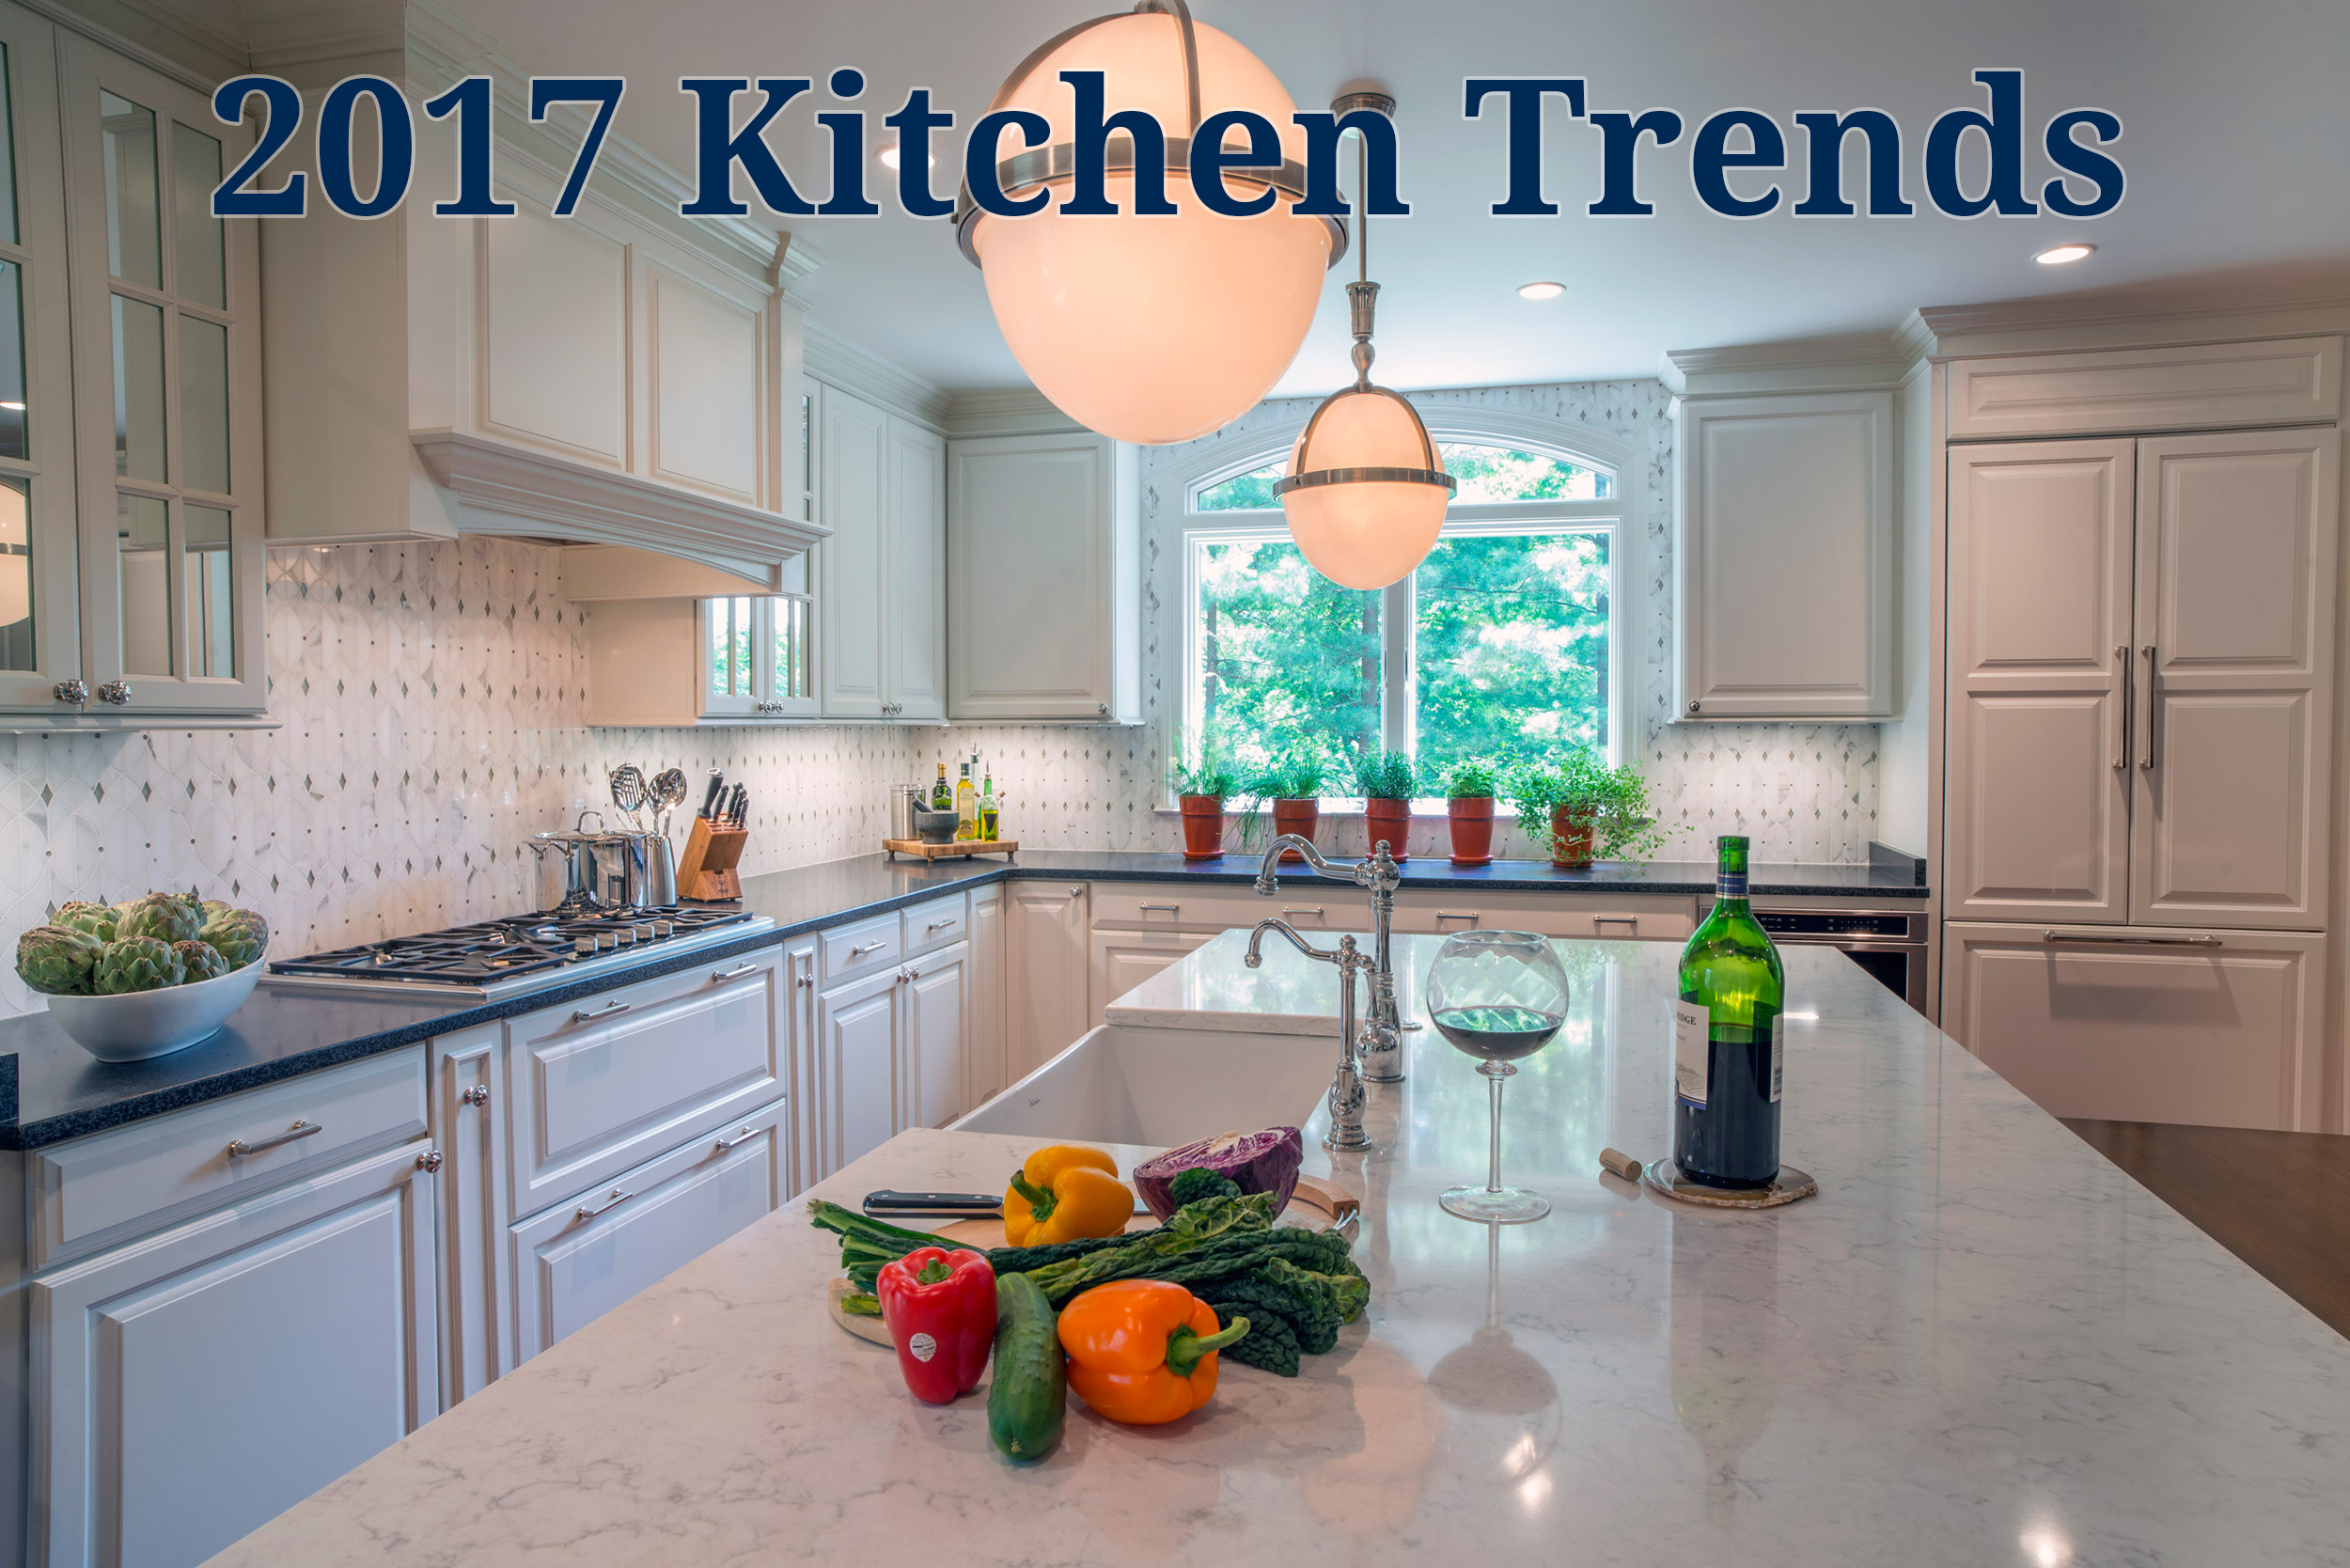 Kitchen Trends for 2017 - Haskell\'s Blog